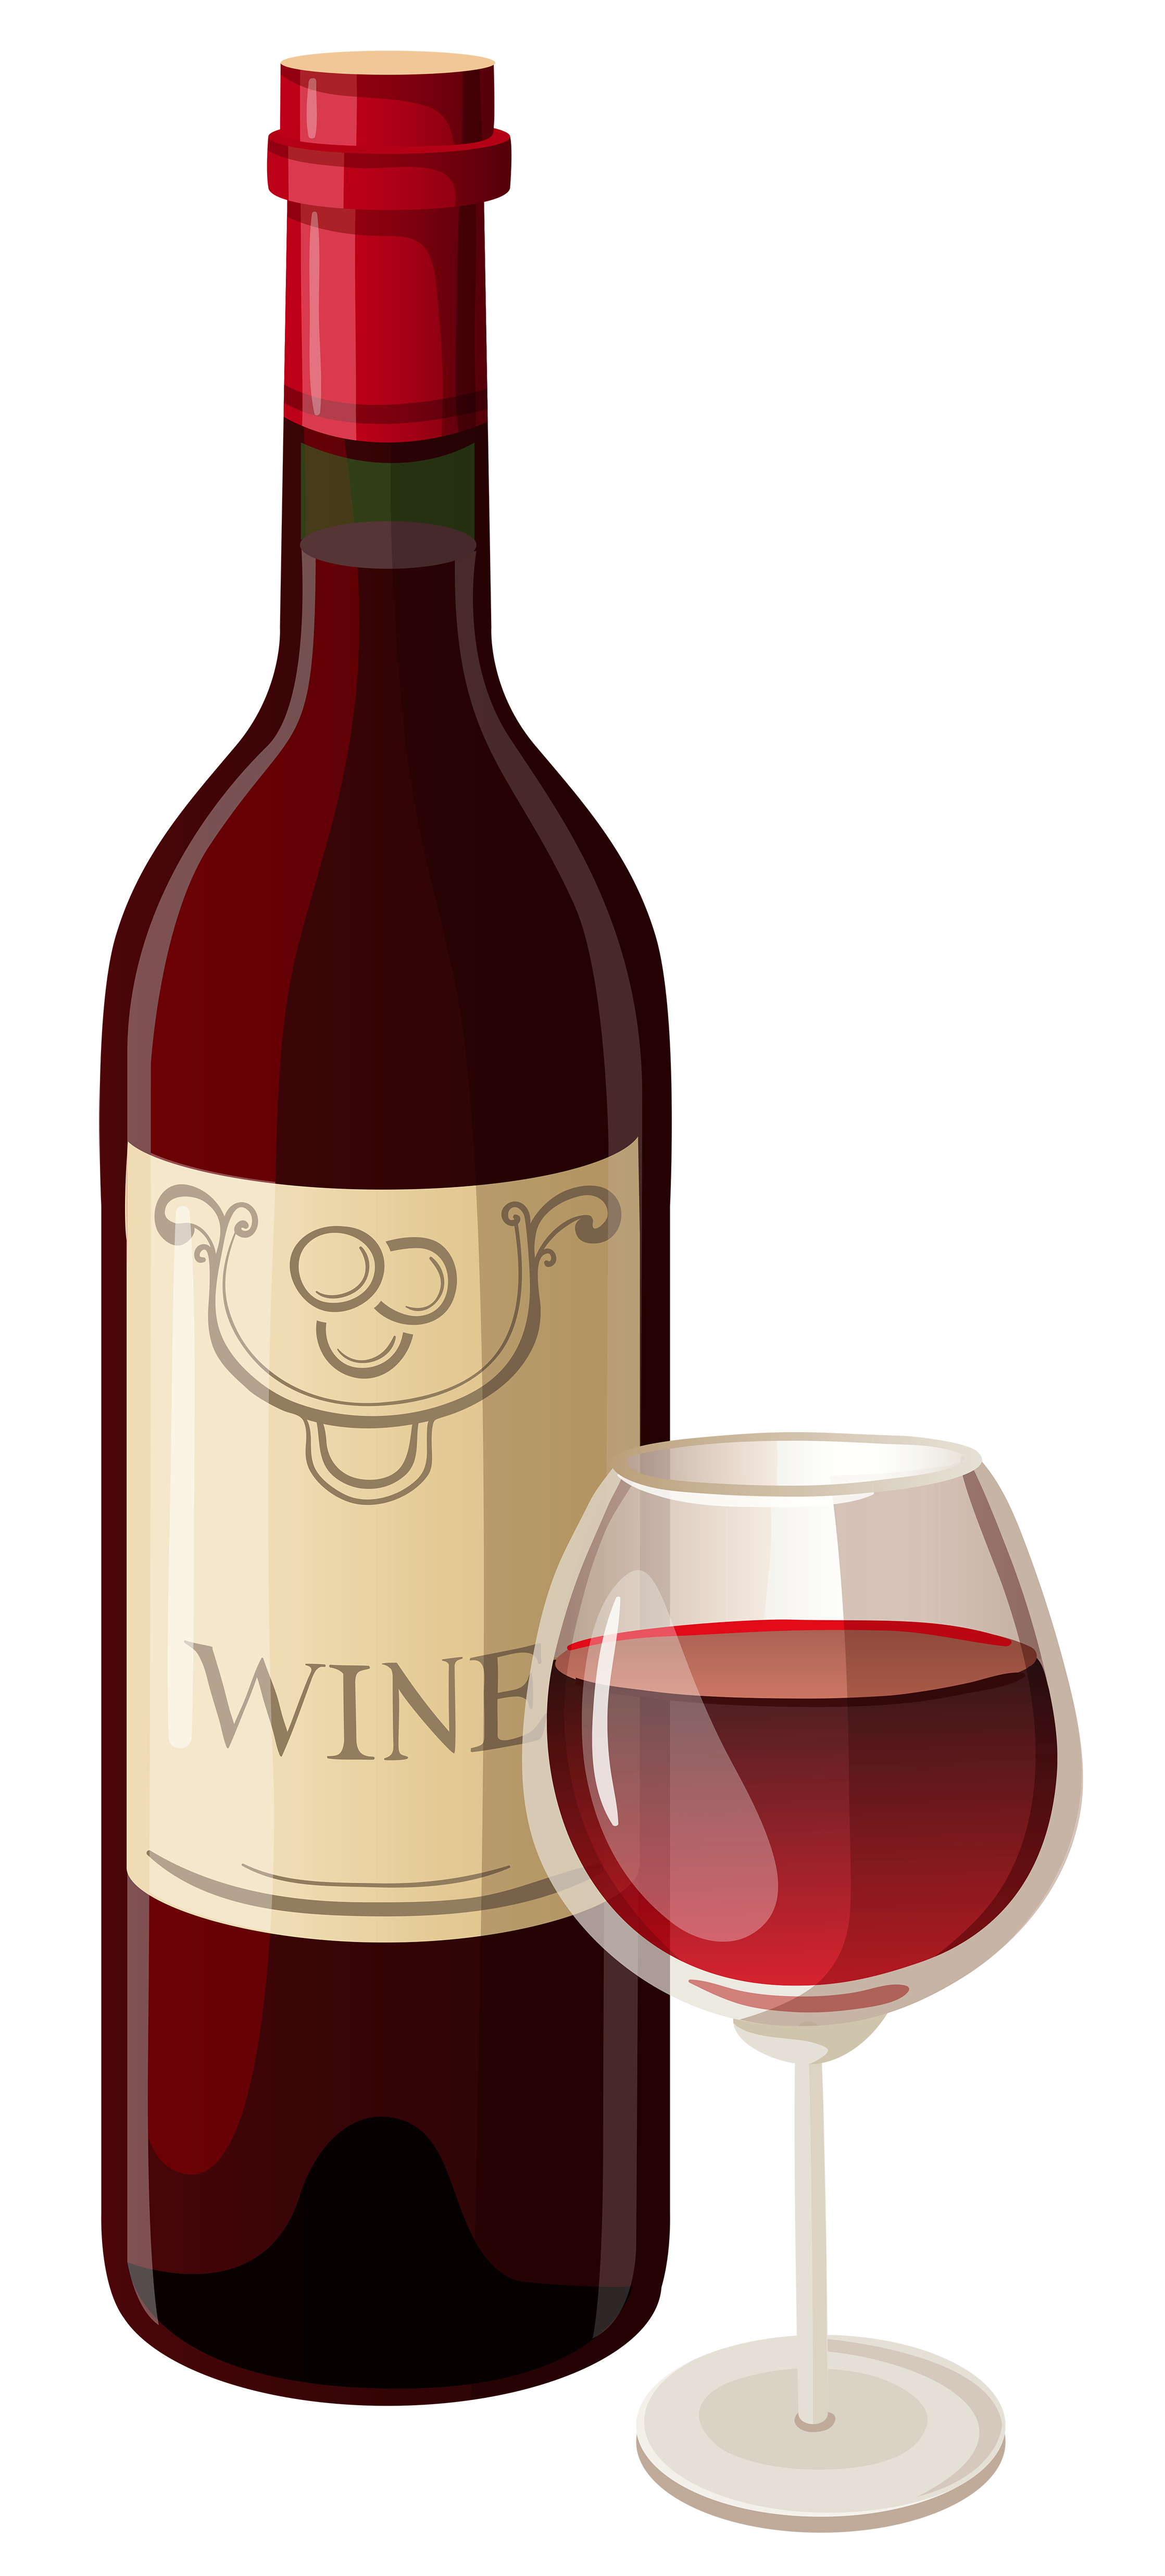 jpg download Cocktail drawing alcohol bottle. Collection of free dirking